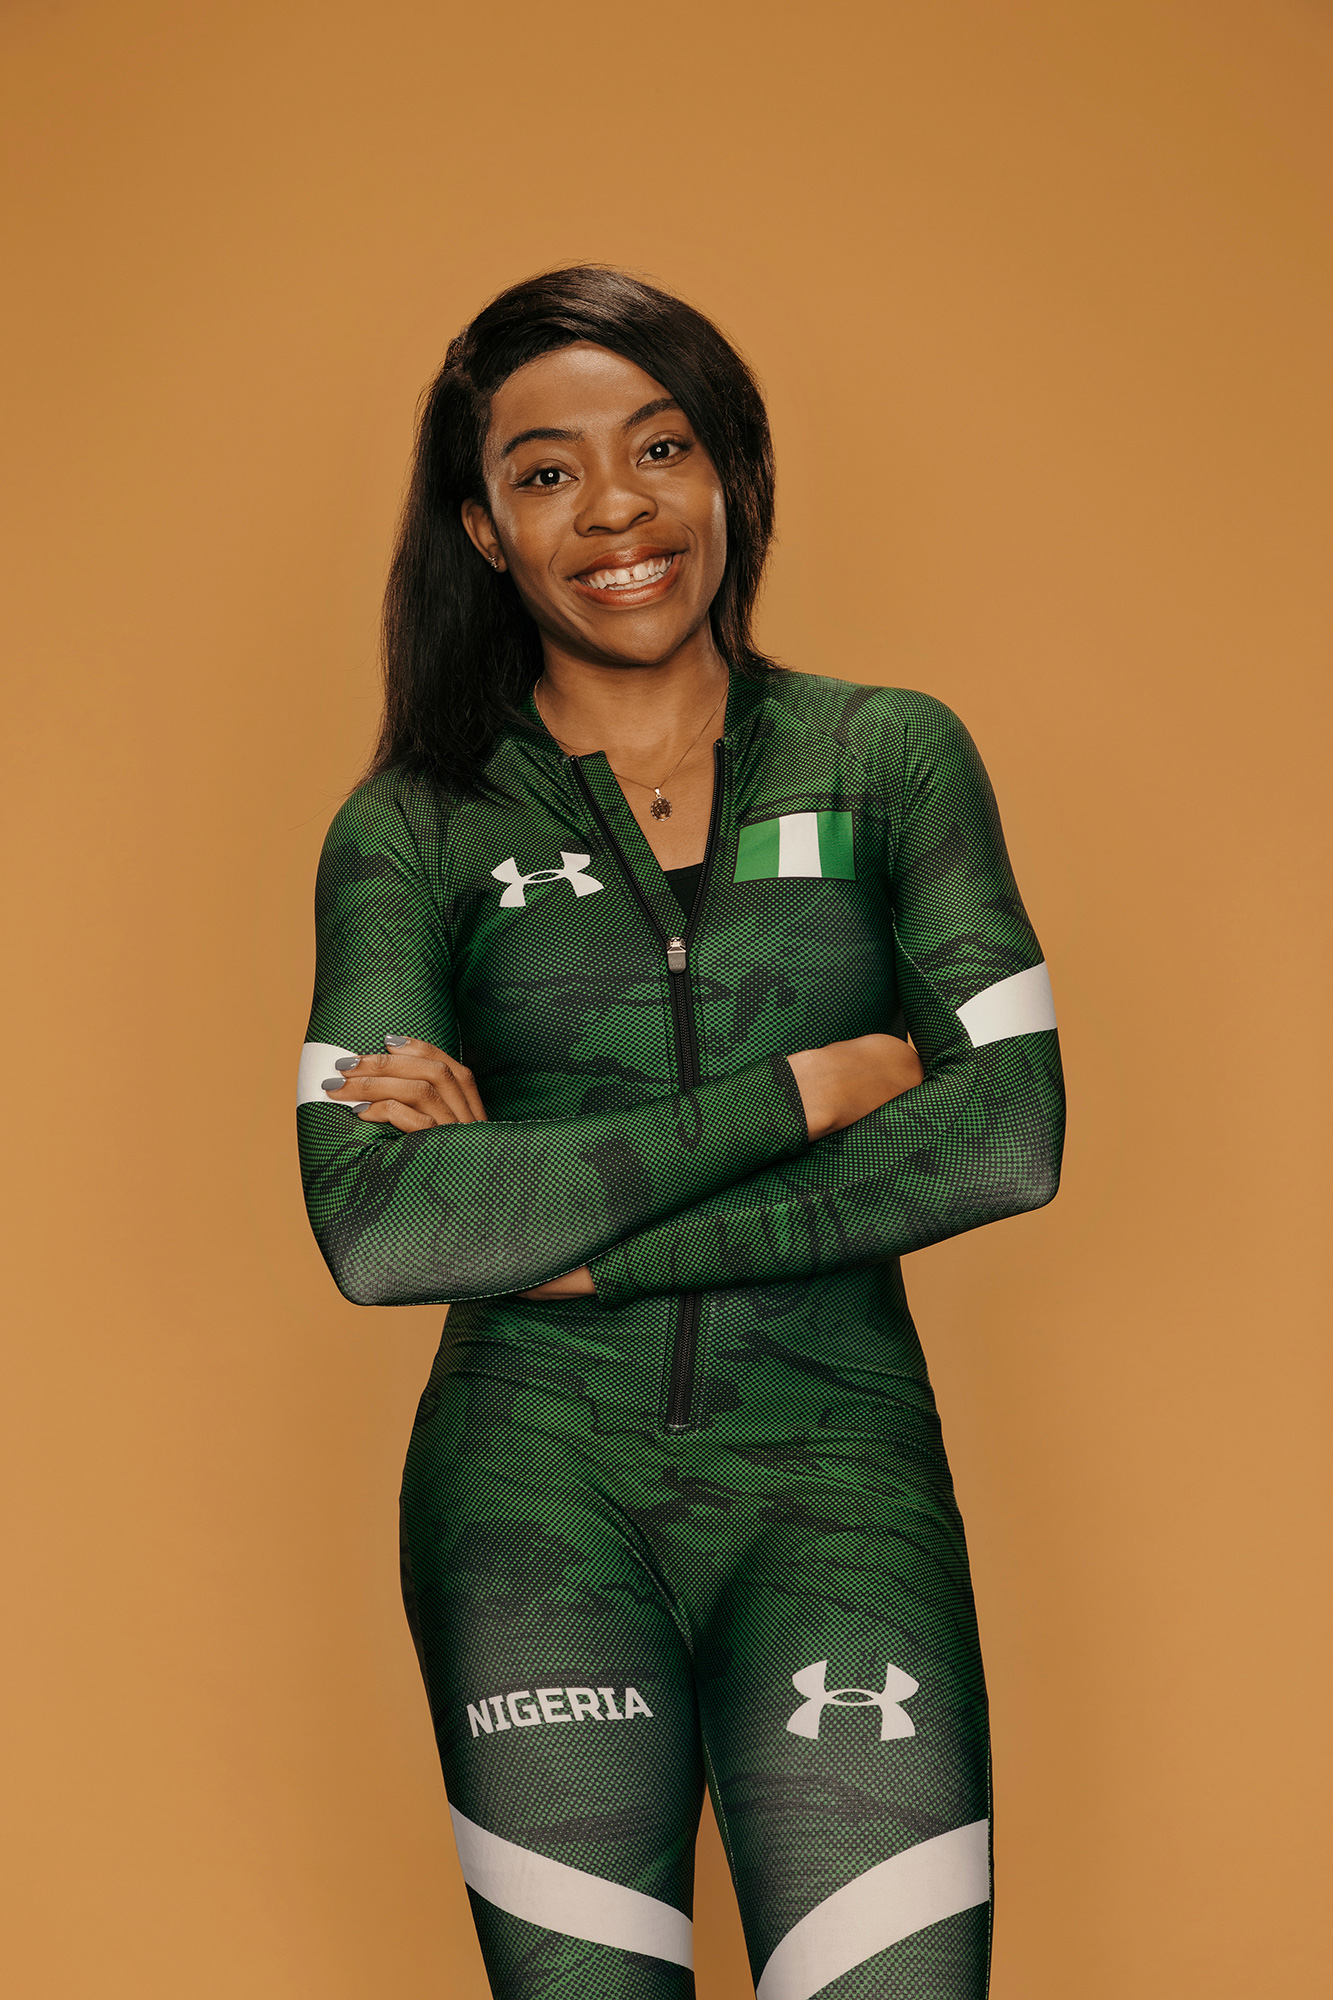 Ngozi Onuwere, Nigerian Olympic bobsledder and University of Houston sprinter, photographed in her Under Armour competition kit, by editorial photographer, Todd Spoth